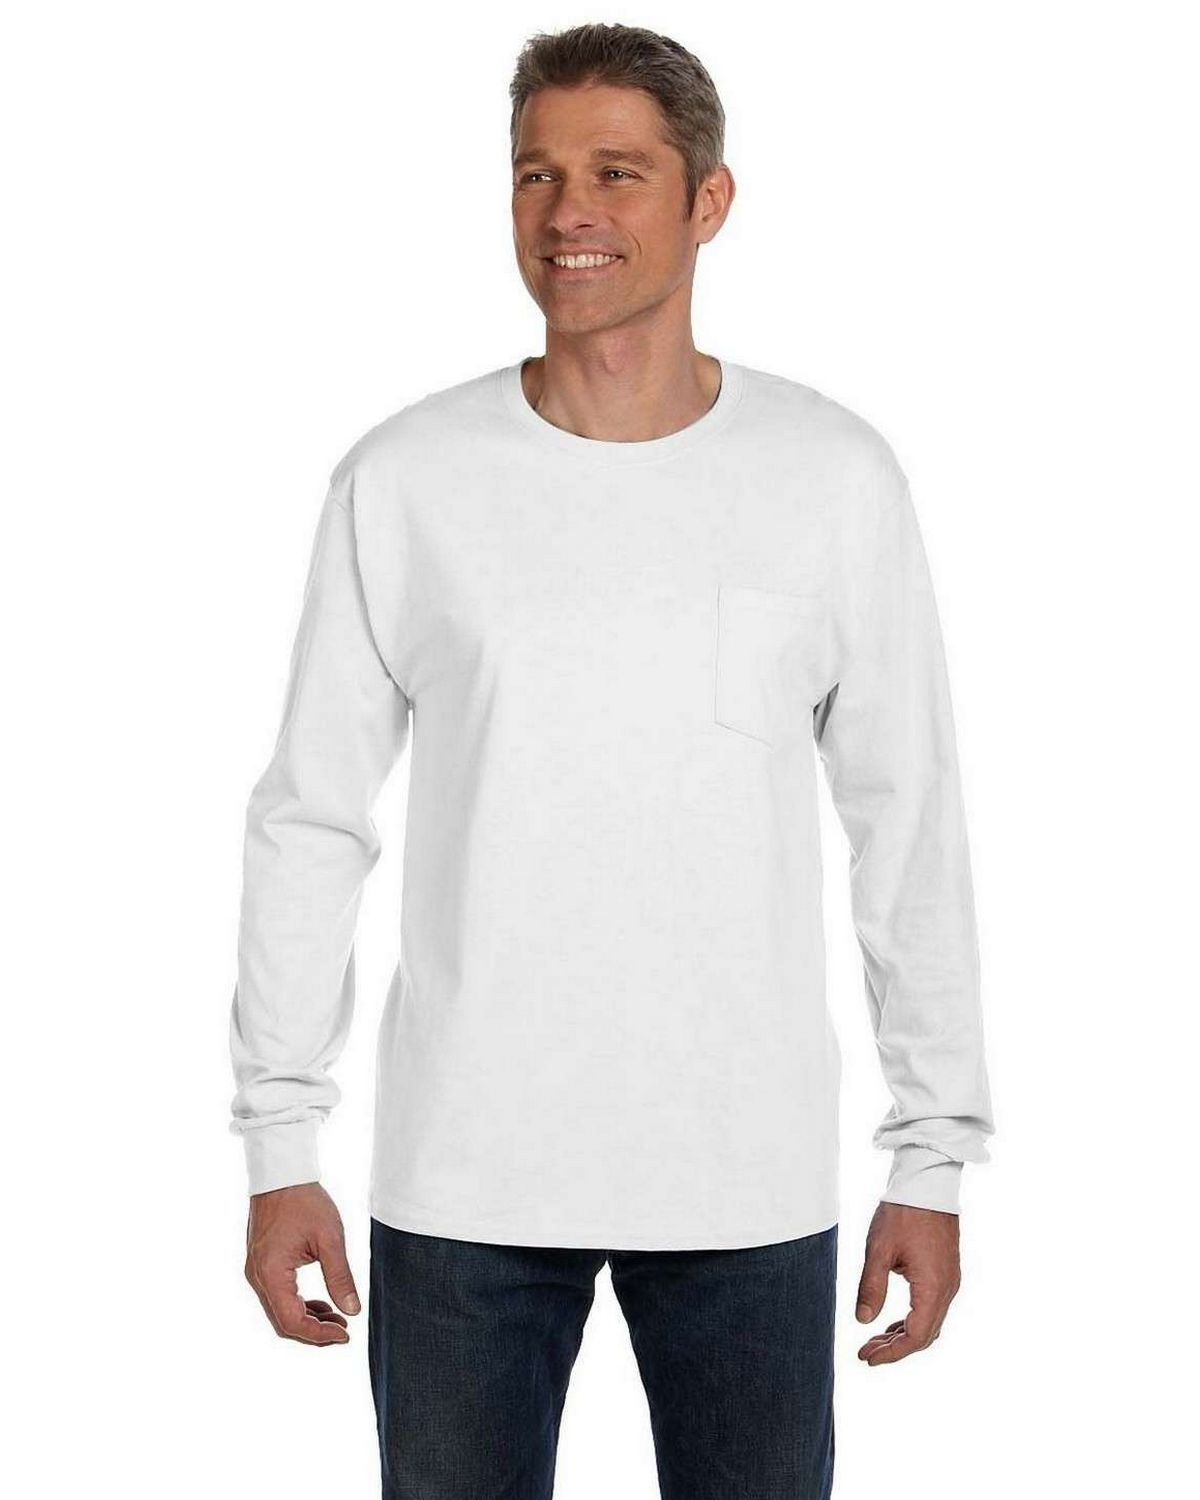 c99d3a7e7ae Buy Hanes 5596 Tagless Long Sleeve Pocket T Shirt